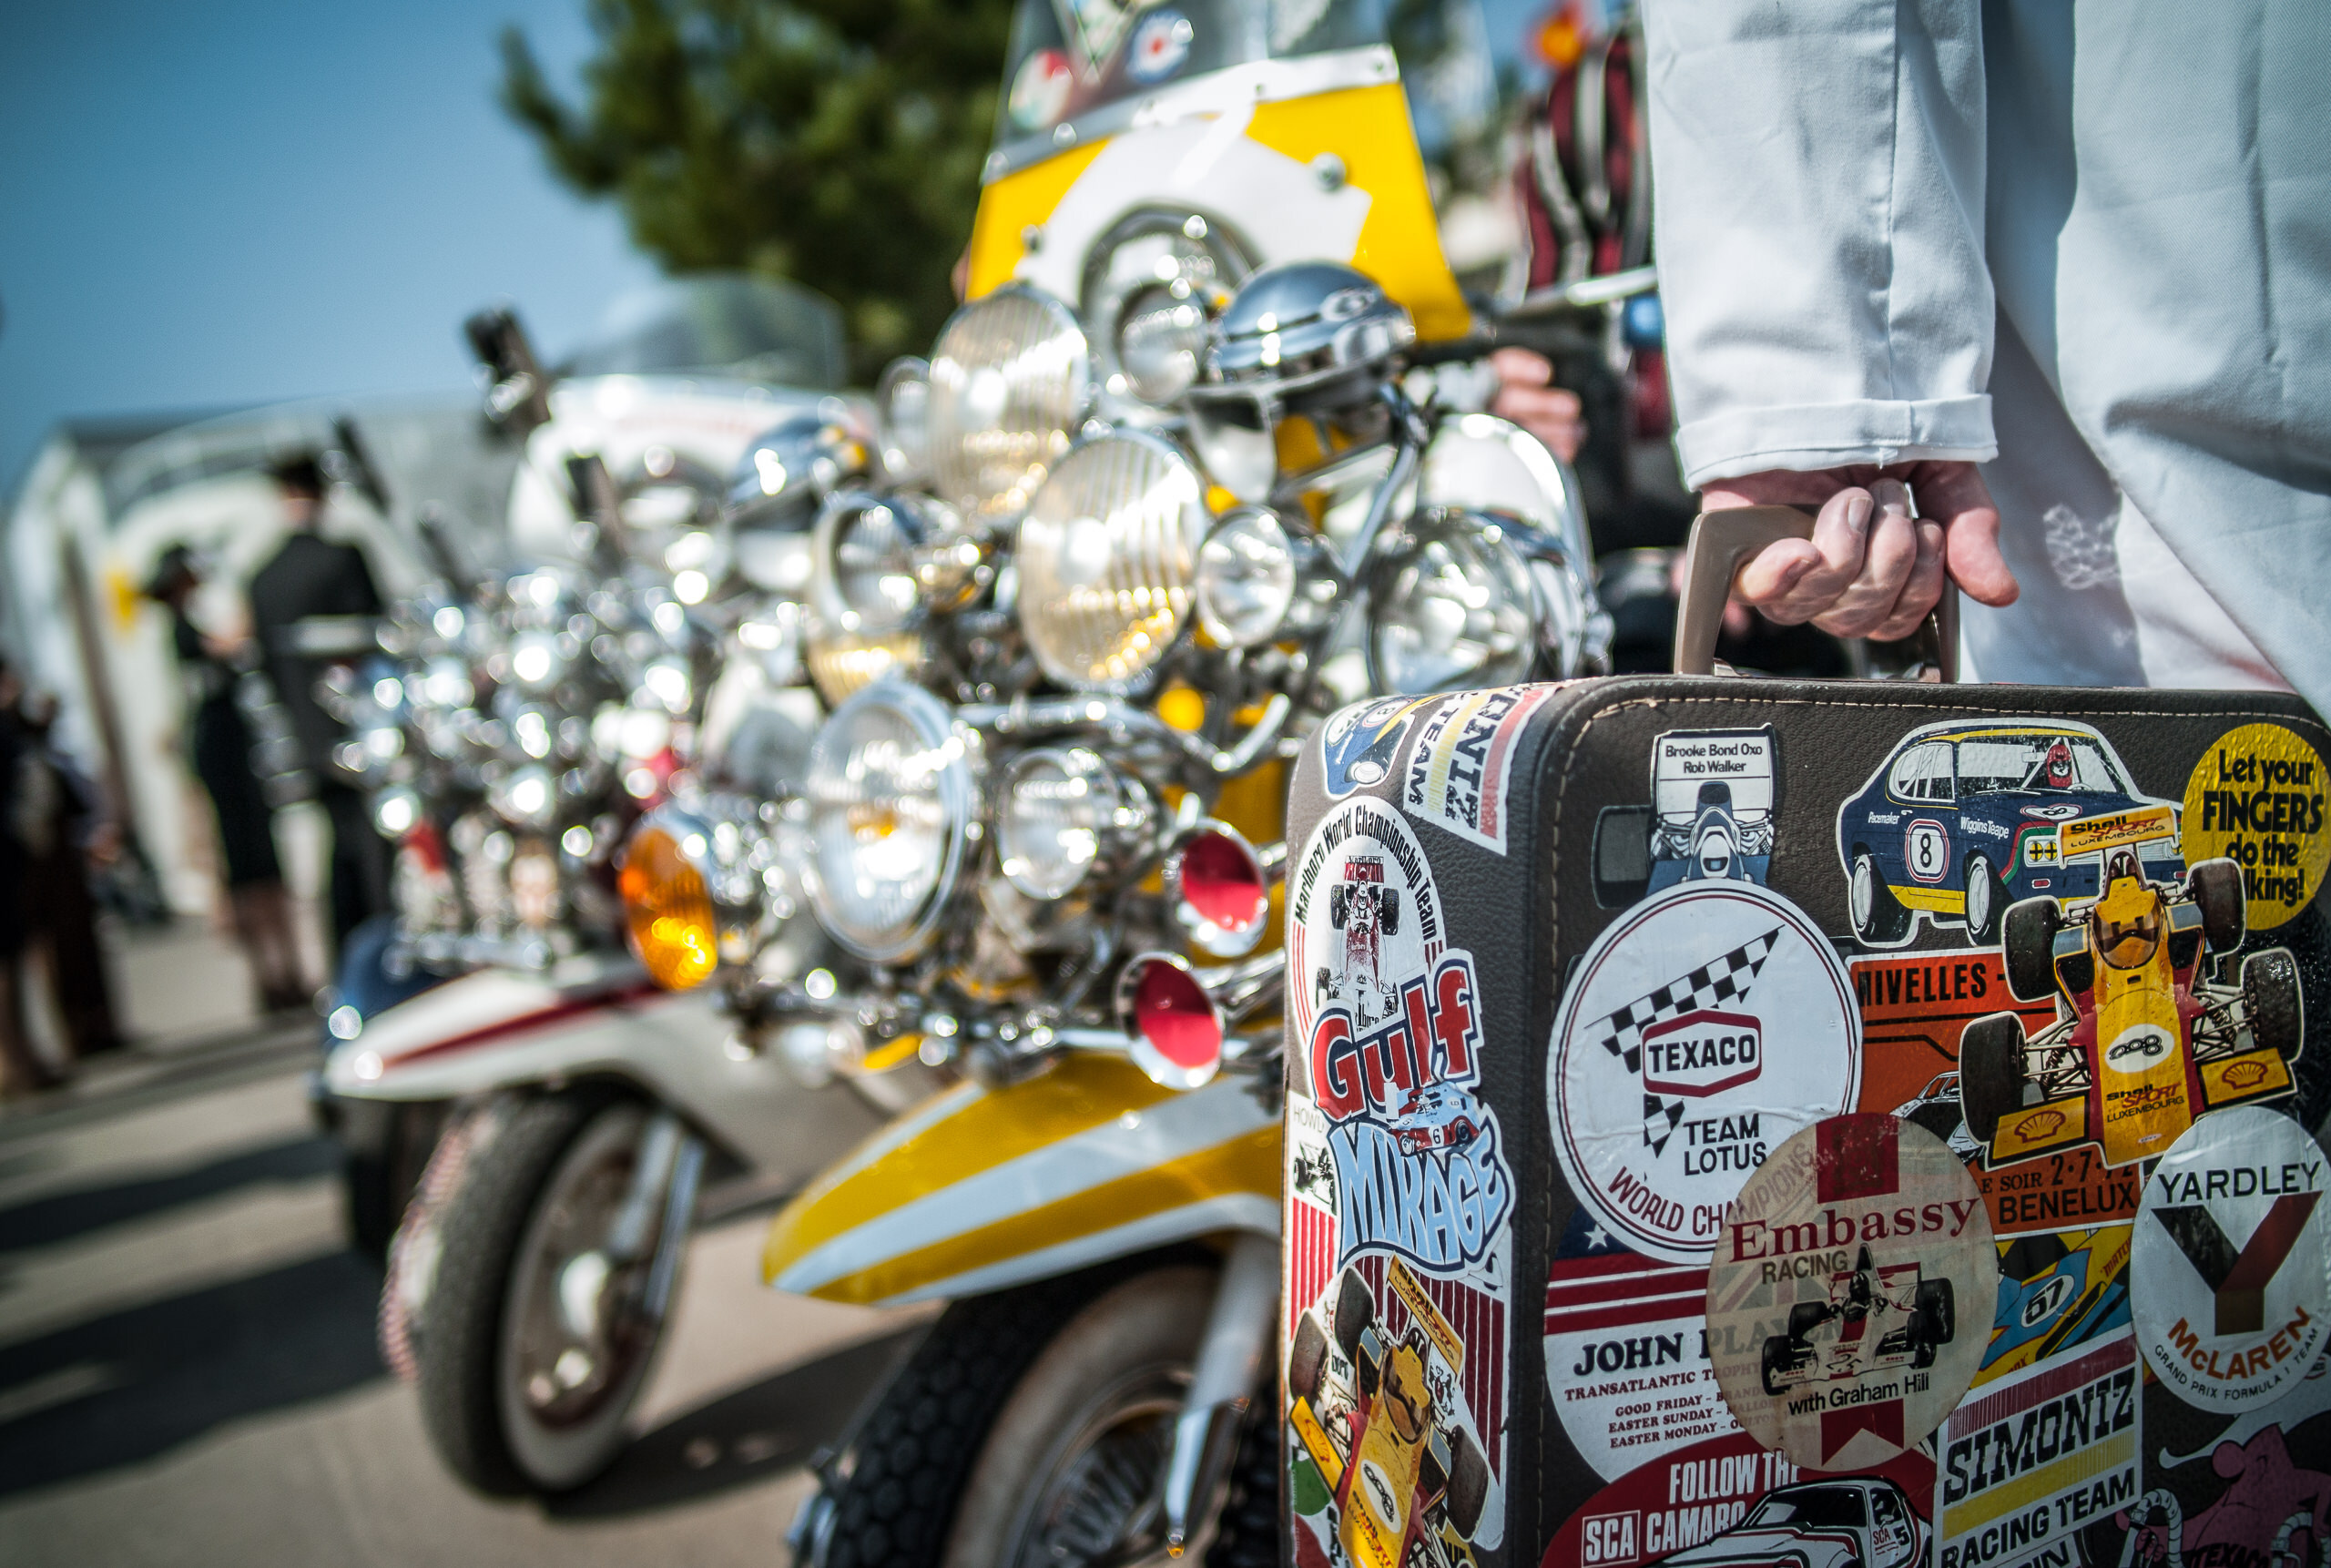 Wayfinder Workshop Goodwood Revival 21Mm Summilux Scooters Suitcase By Brett Leica Photographer